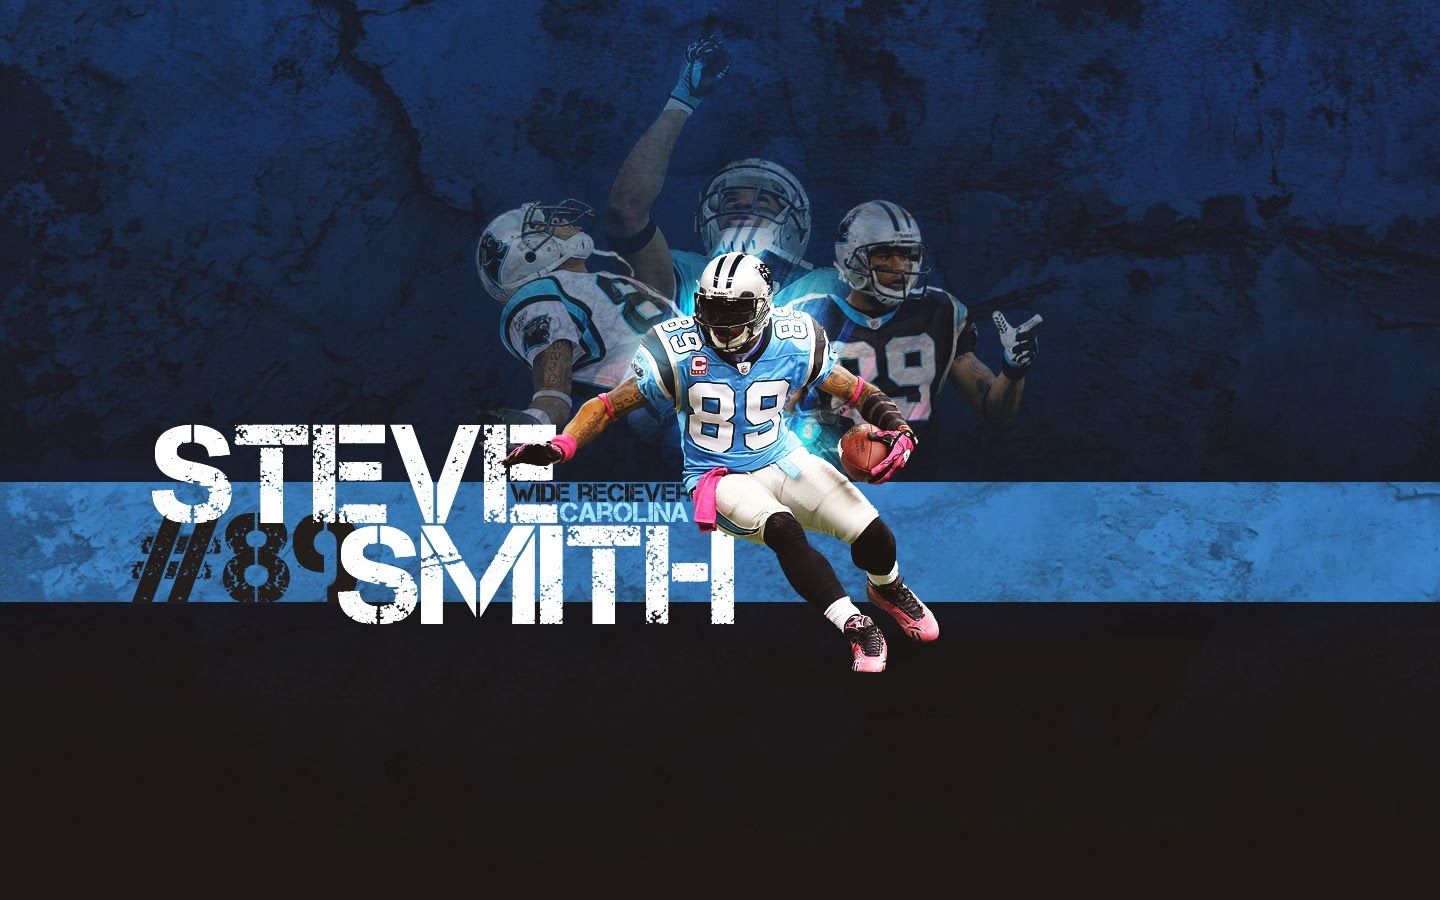 Carolina Panthers Pictures HD Wallpapers Window Top Rated Wallpapers 1440x900